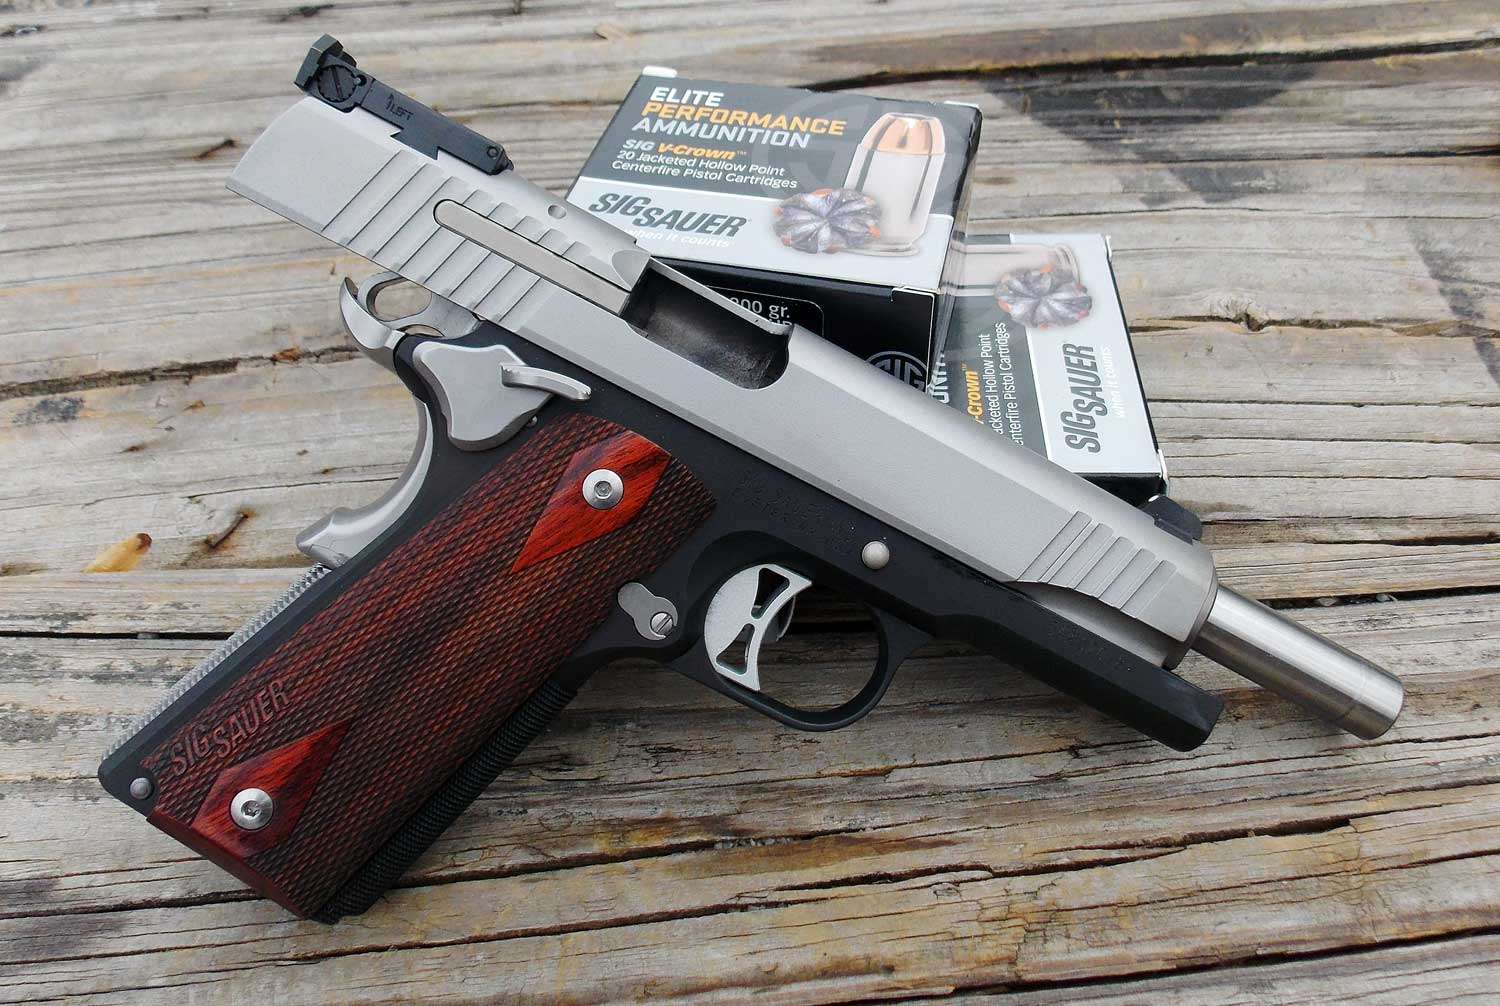 SIG Sauer 1911 pistol with boxes of SIG Elite ammunition